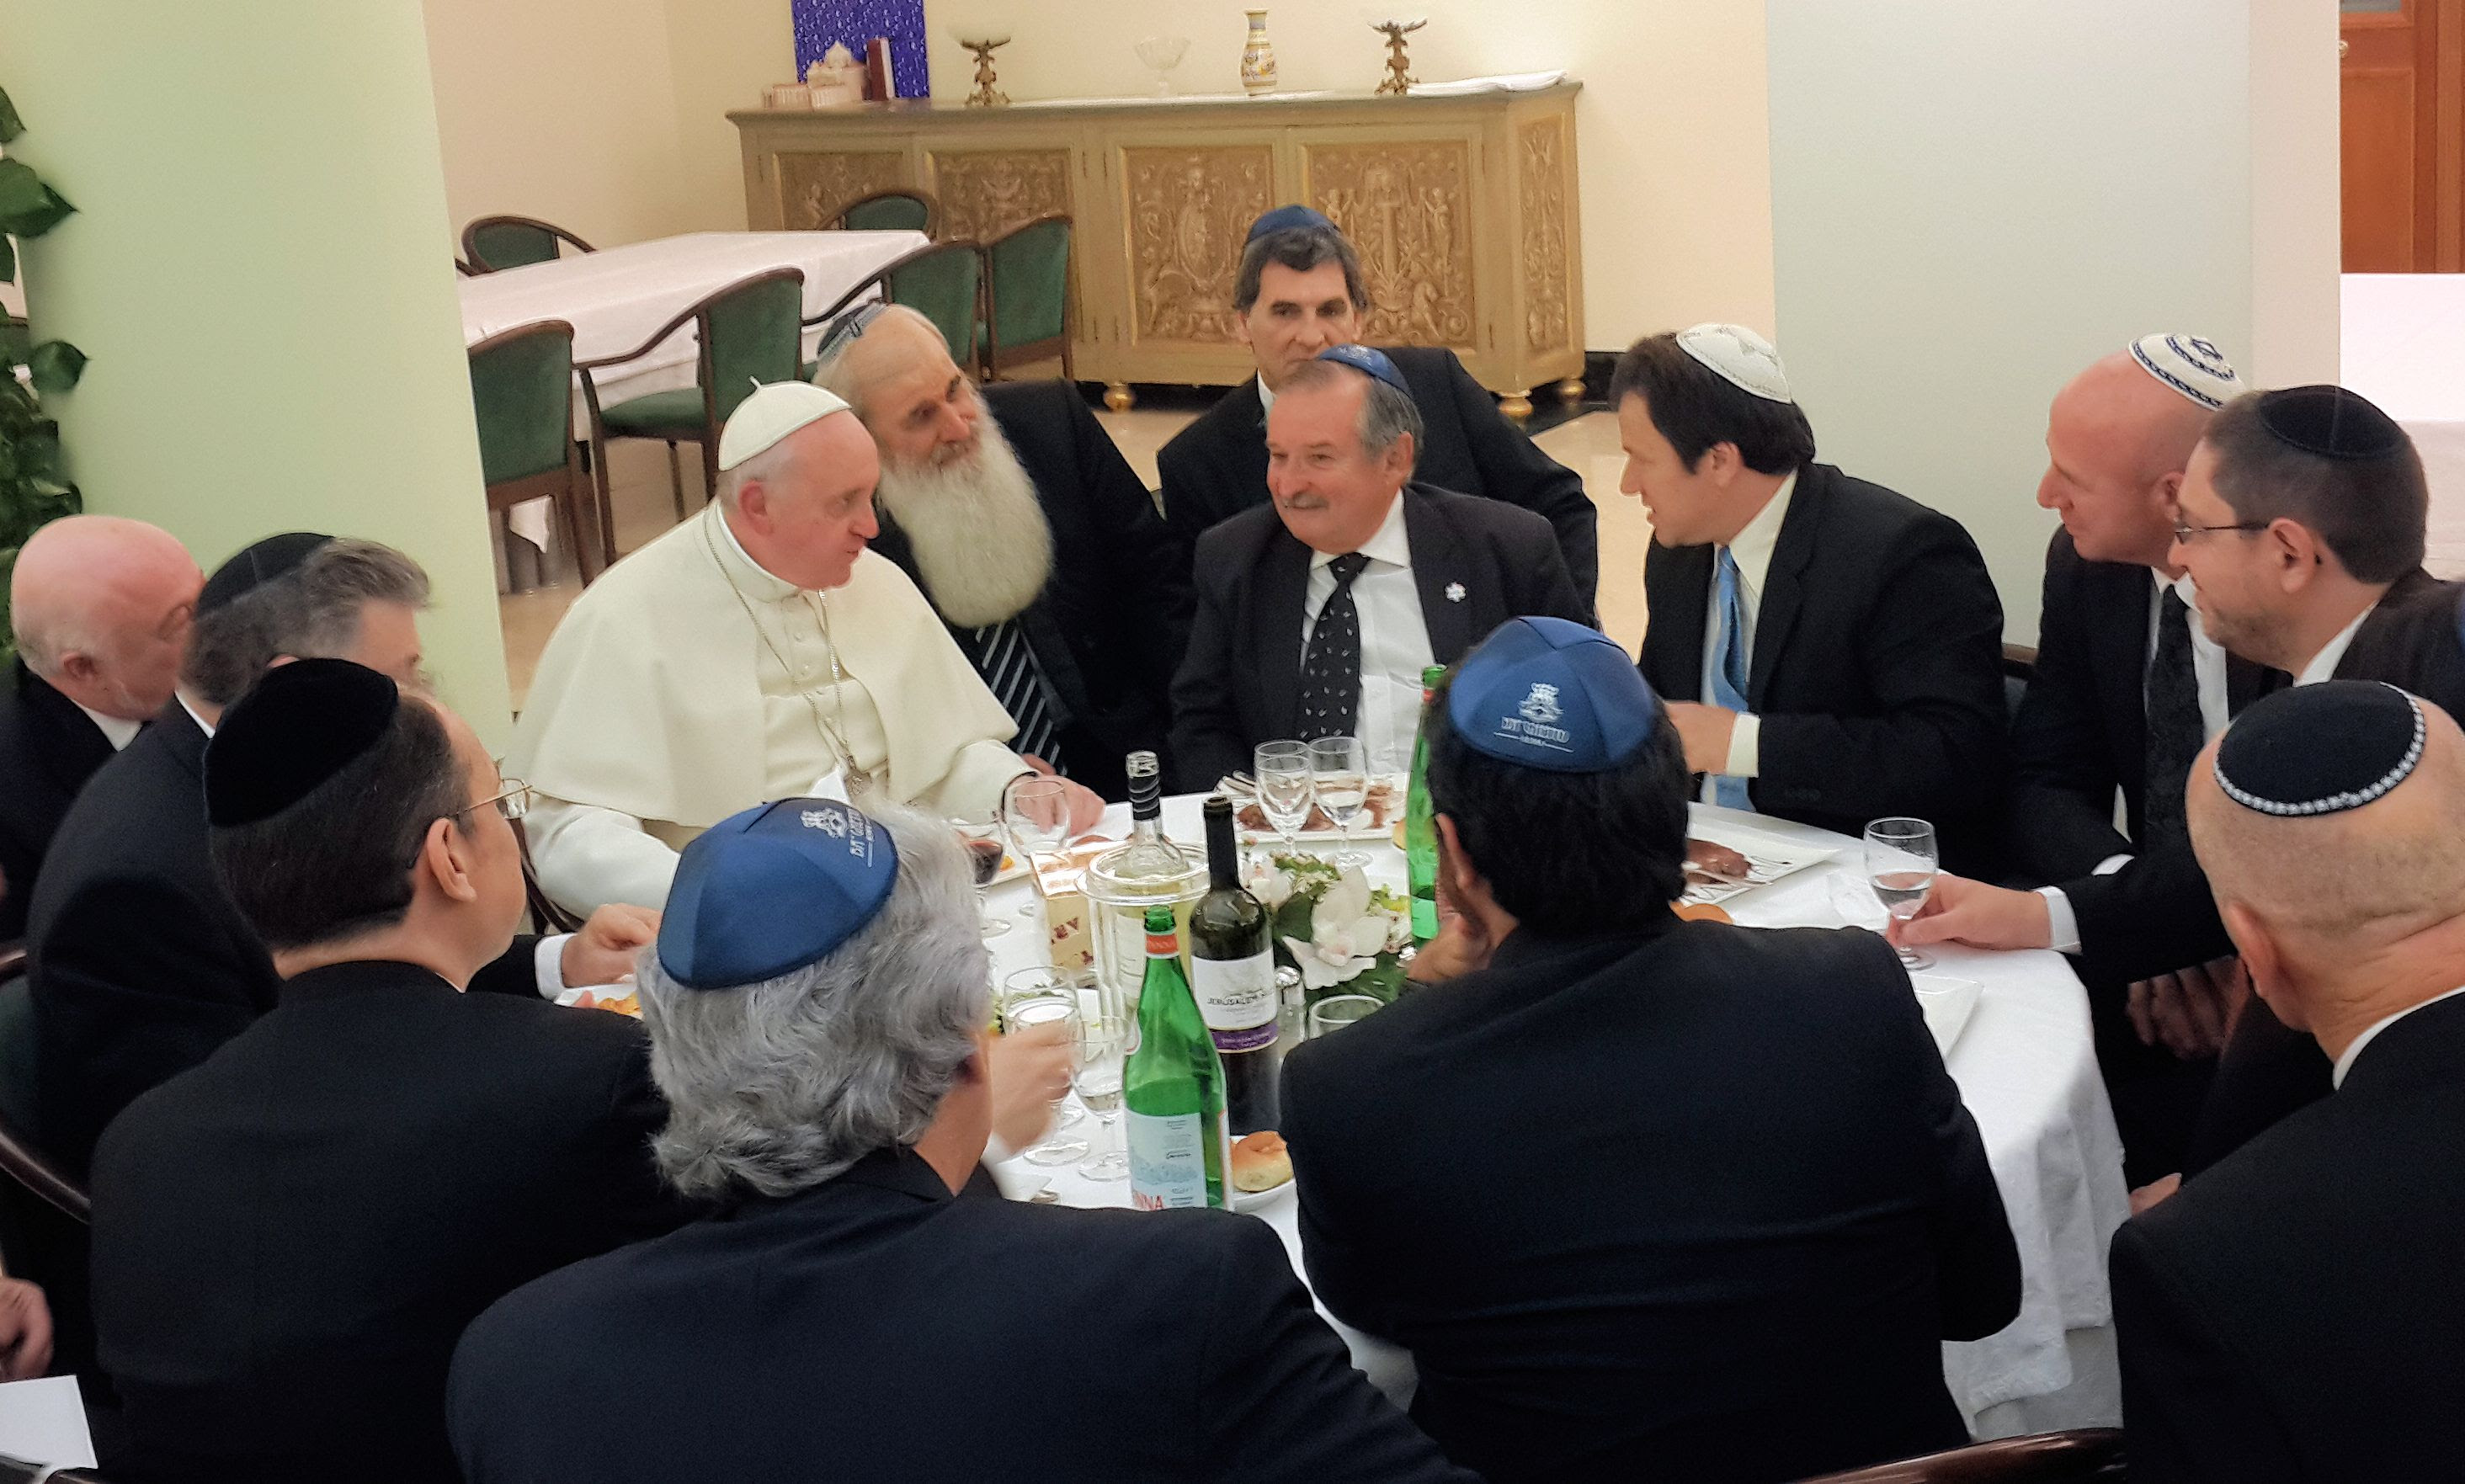 http://www.jta.org/wp-content/uploads/2014/01/pope-with-Argentine-jewish-leaders-2014.jpg